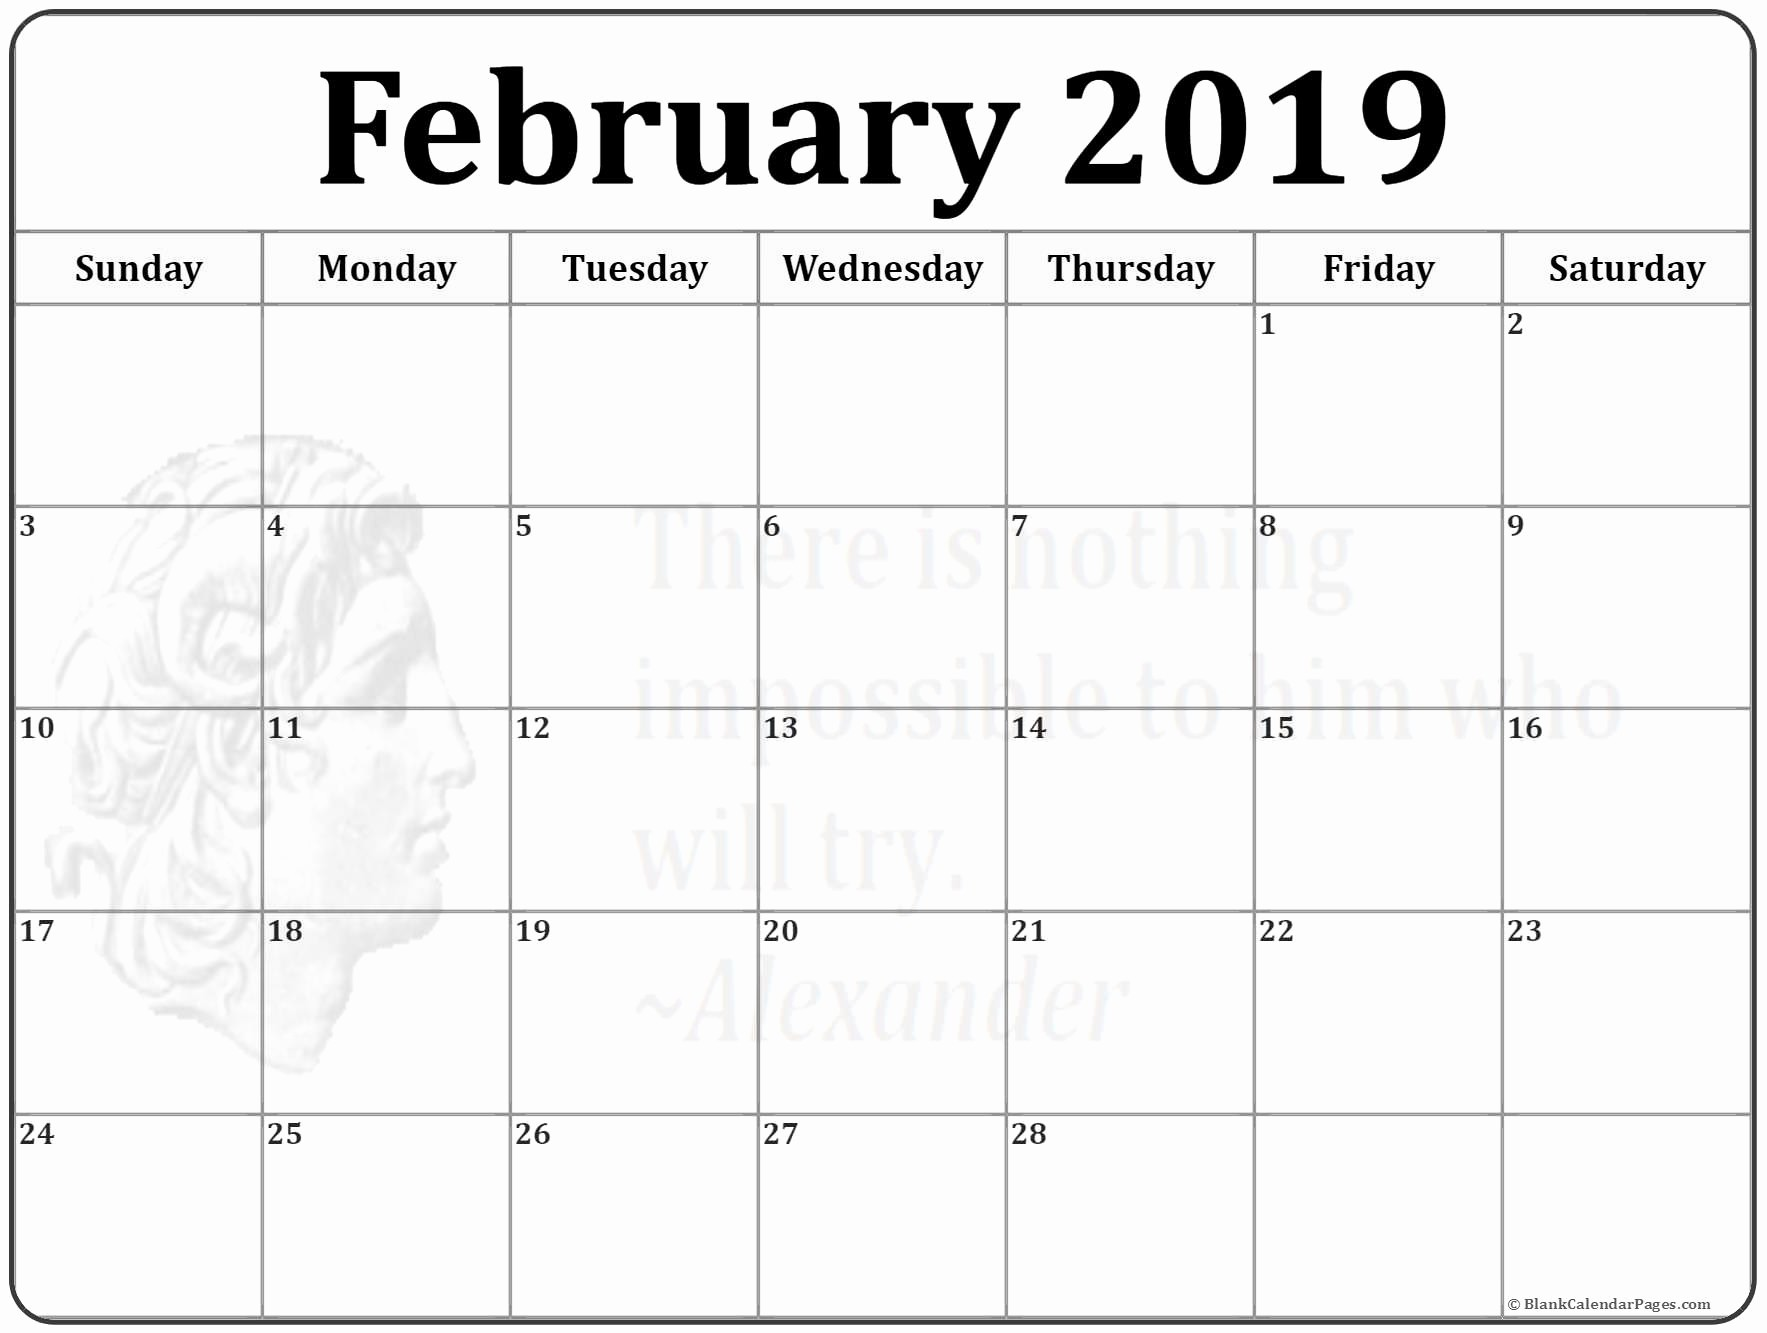 Free Printable Weekly Calendar 2019 Luxury February 2019 Calendar